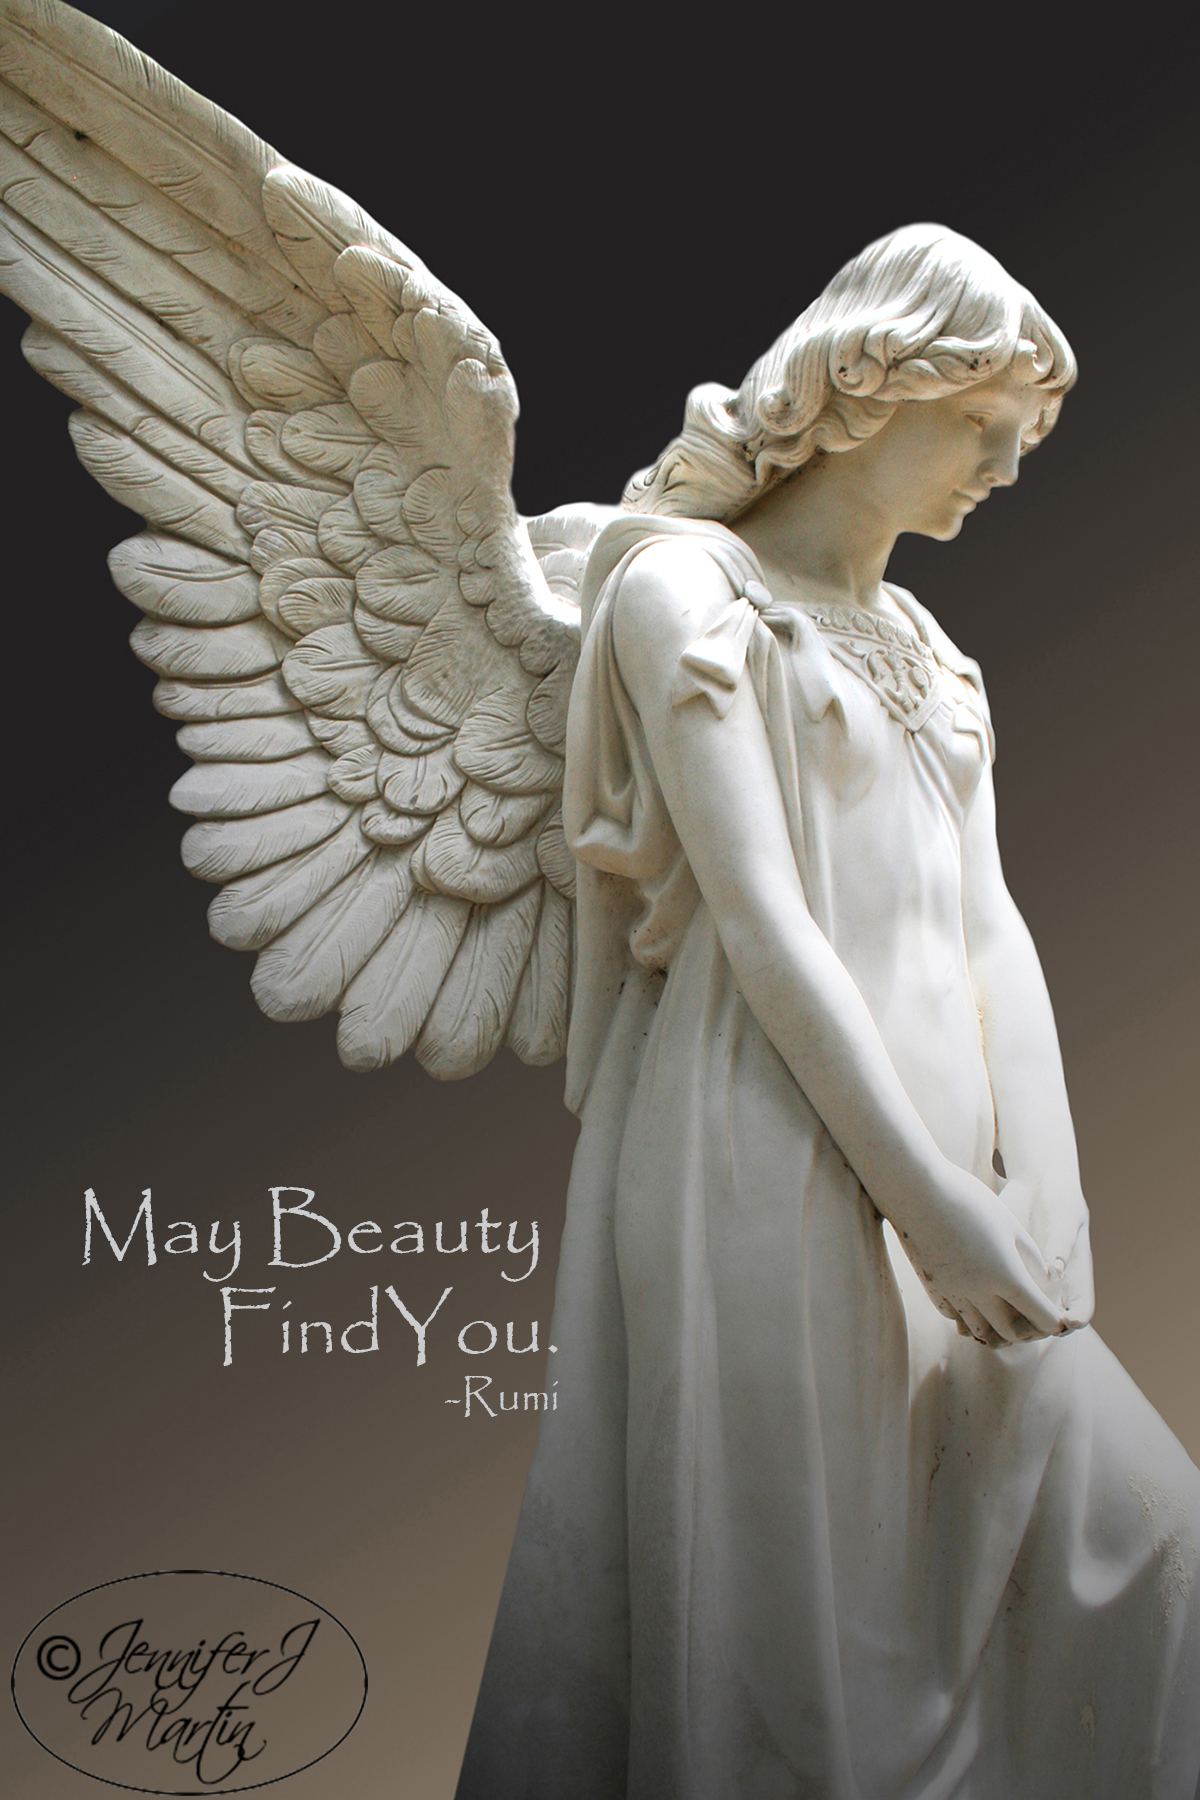 Danny's Angel - May Beauty Find You (Rumi Quote) Print